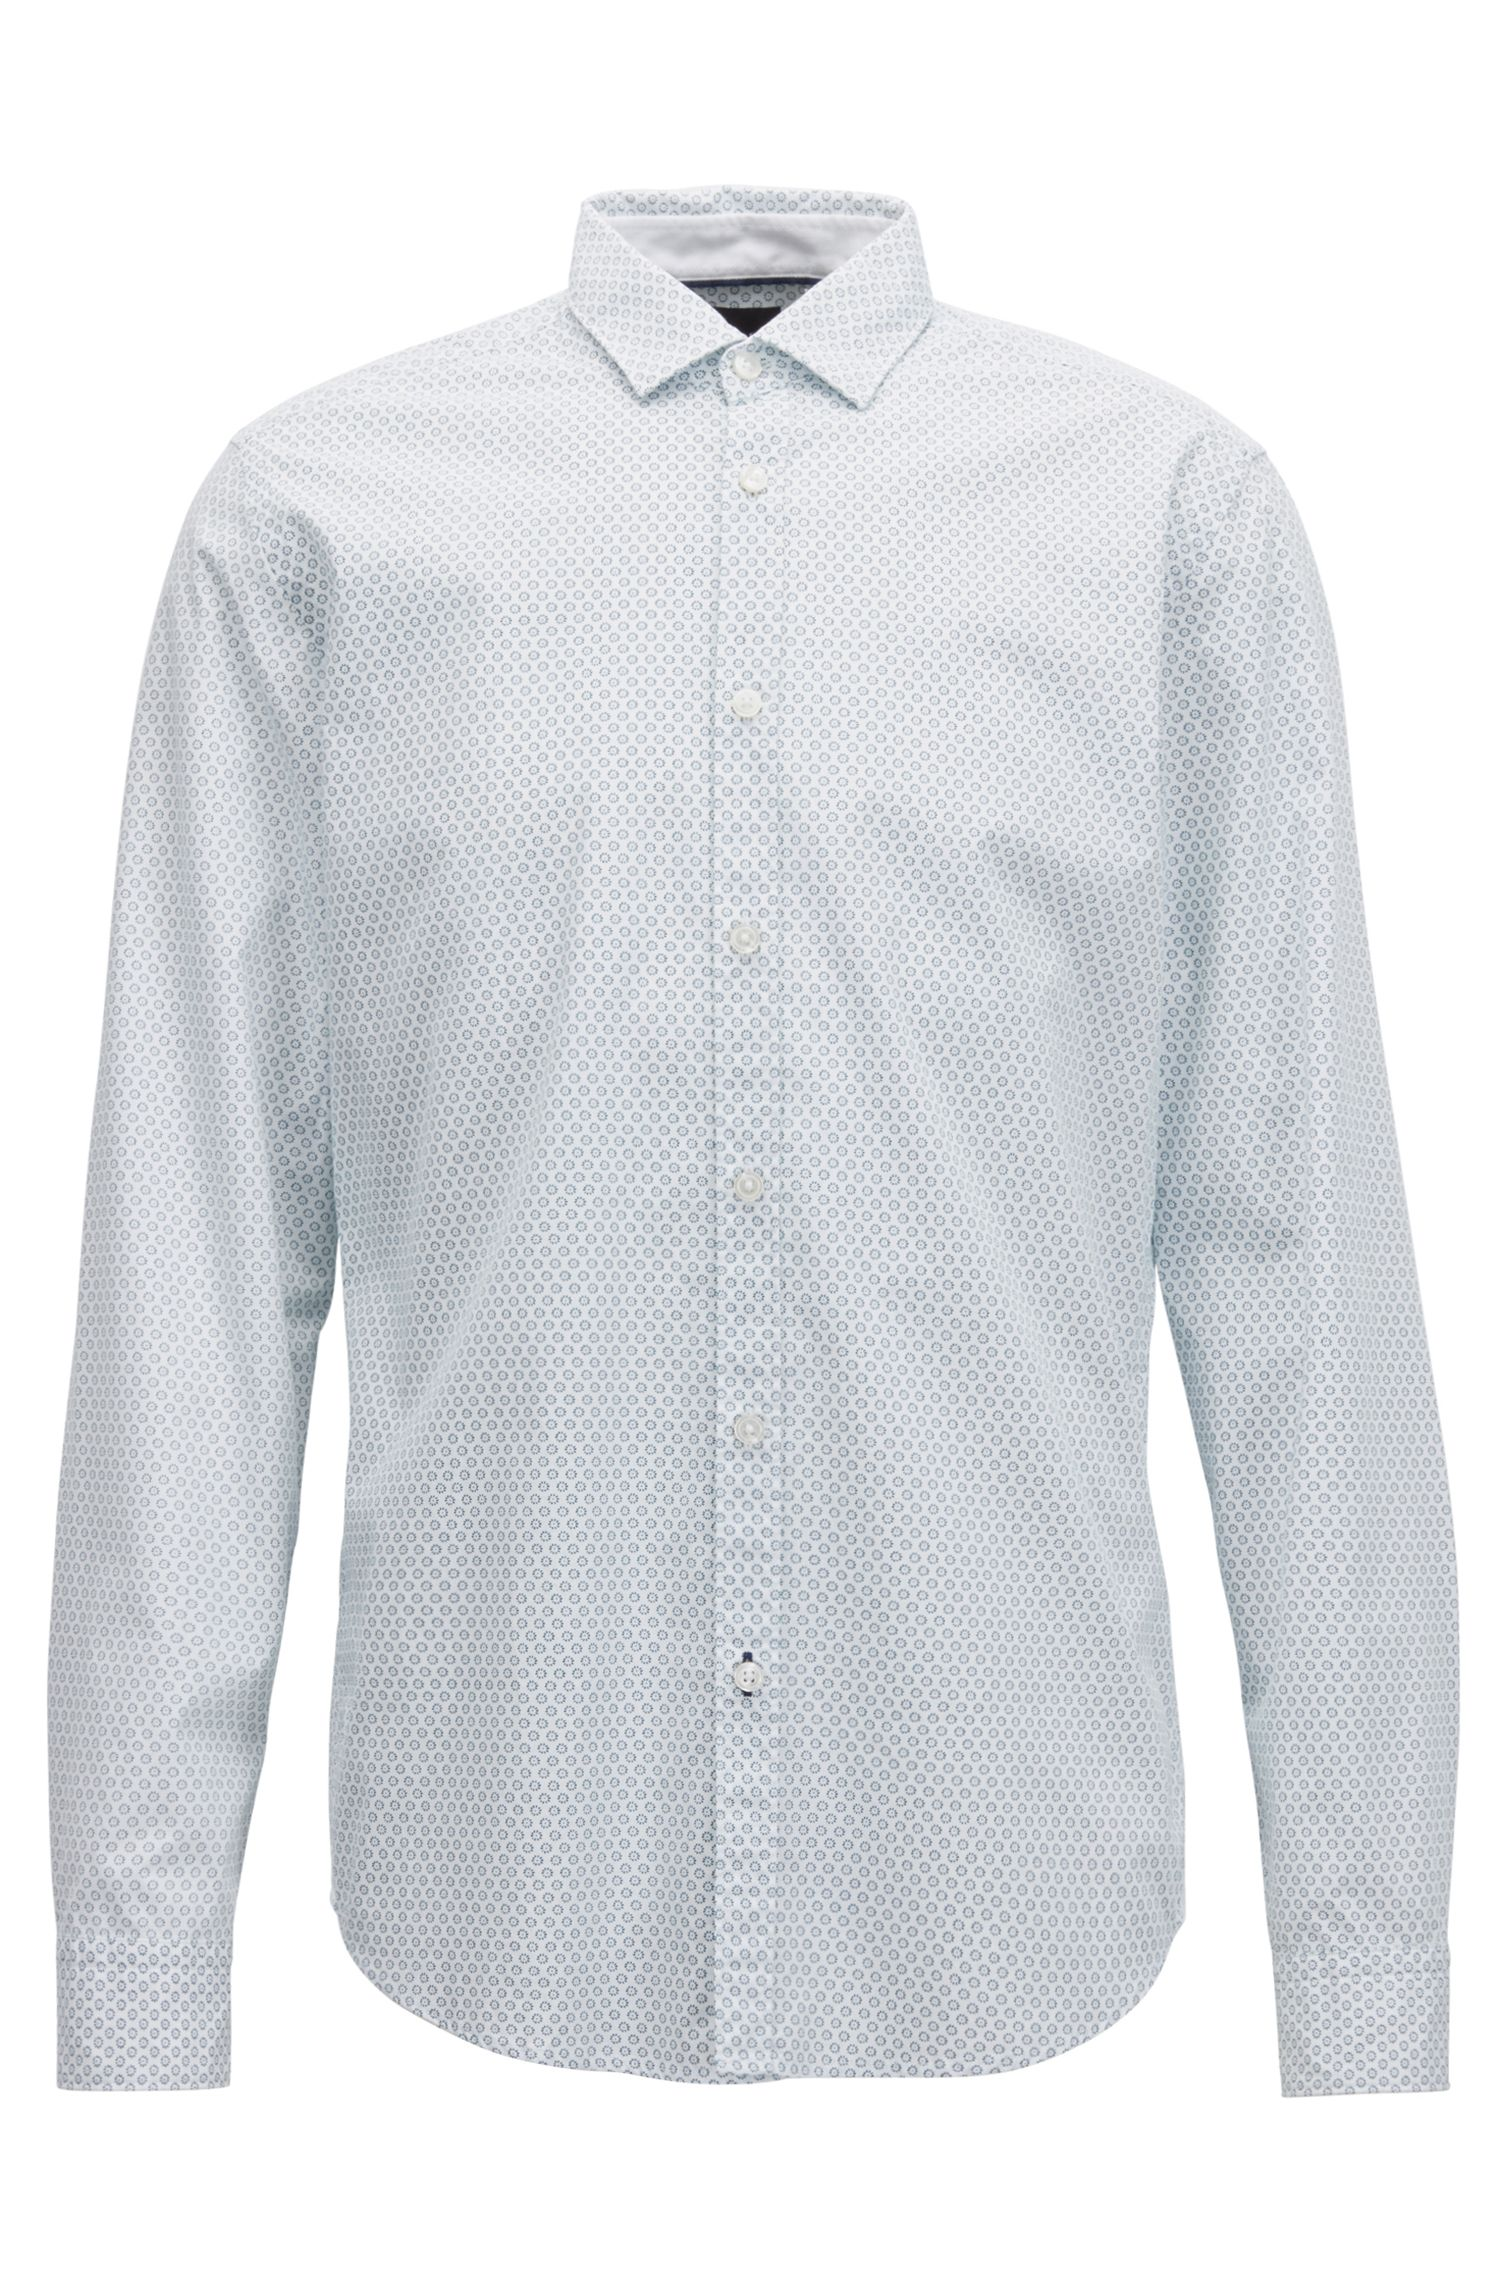 Regular-fit shirt in washed printed cotton, Turquoise